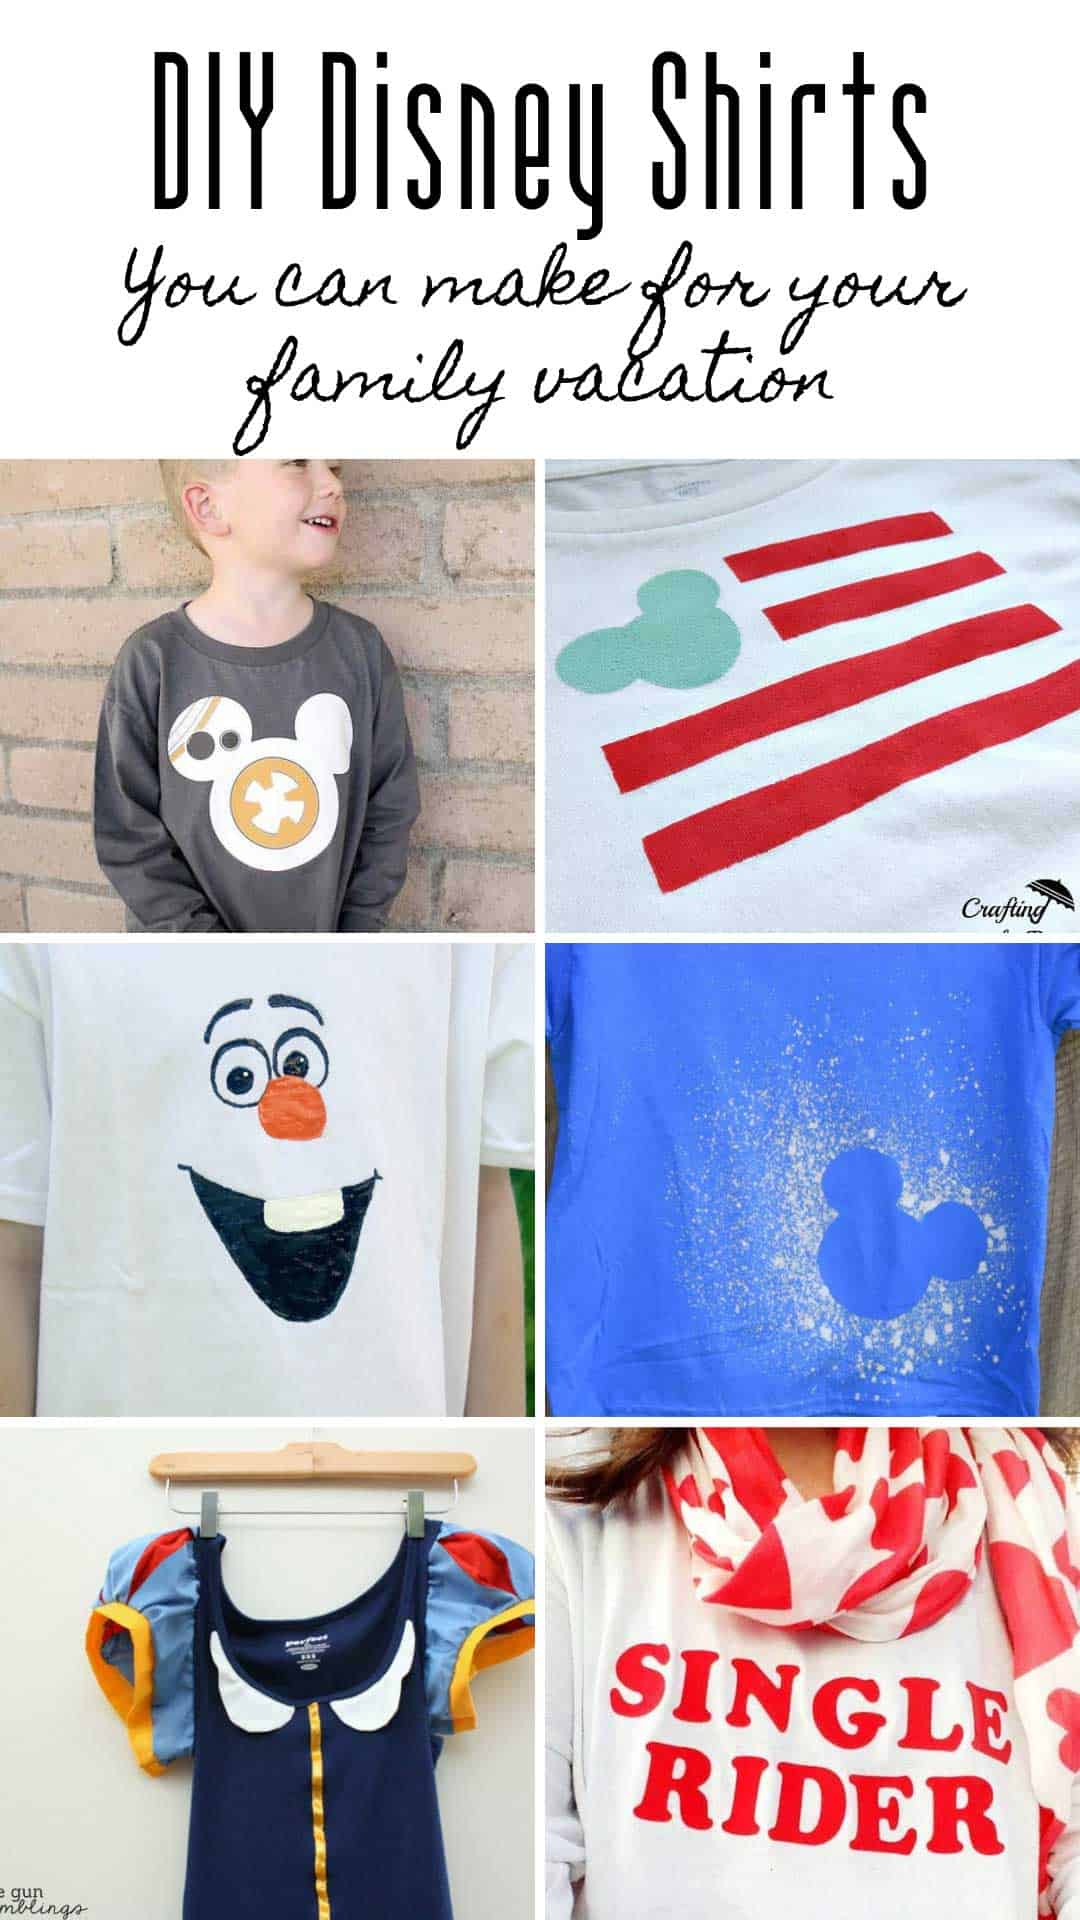 So many cute DIY Disney shirt ideas you can make for your family vacation to Disney World or Disneyland